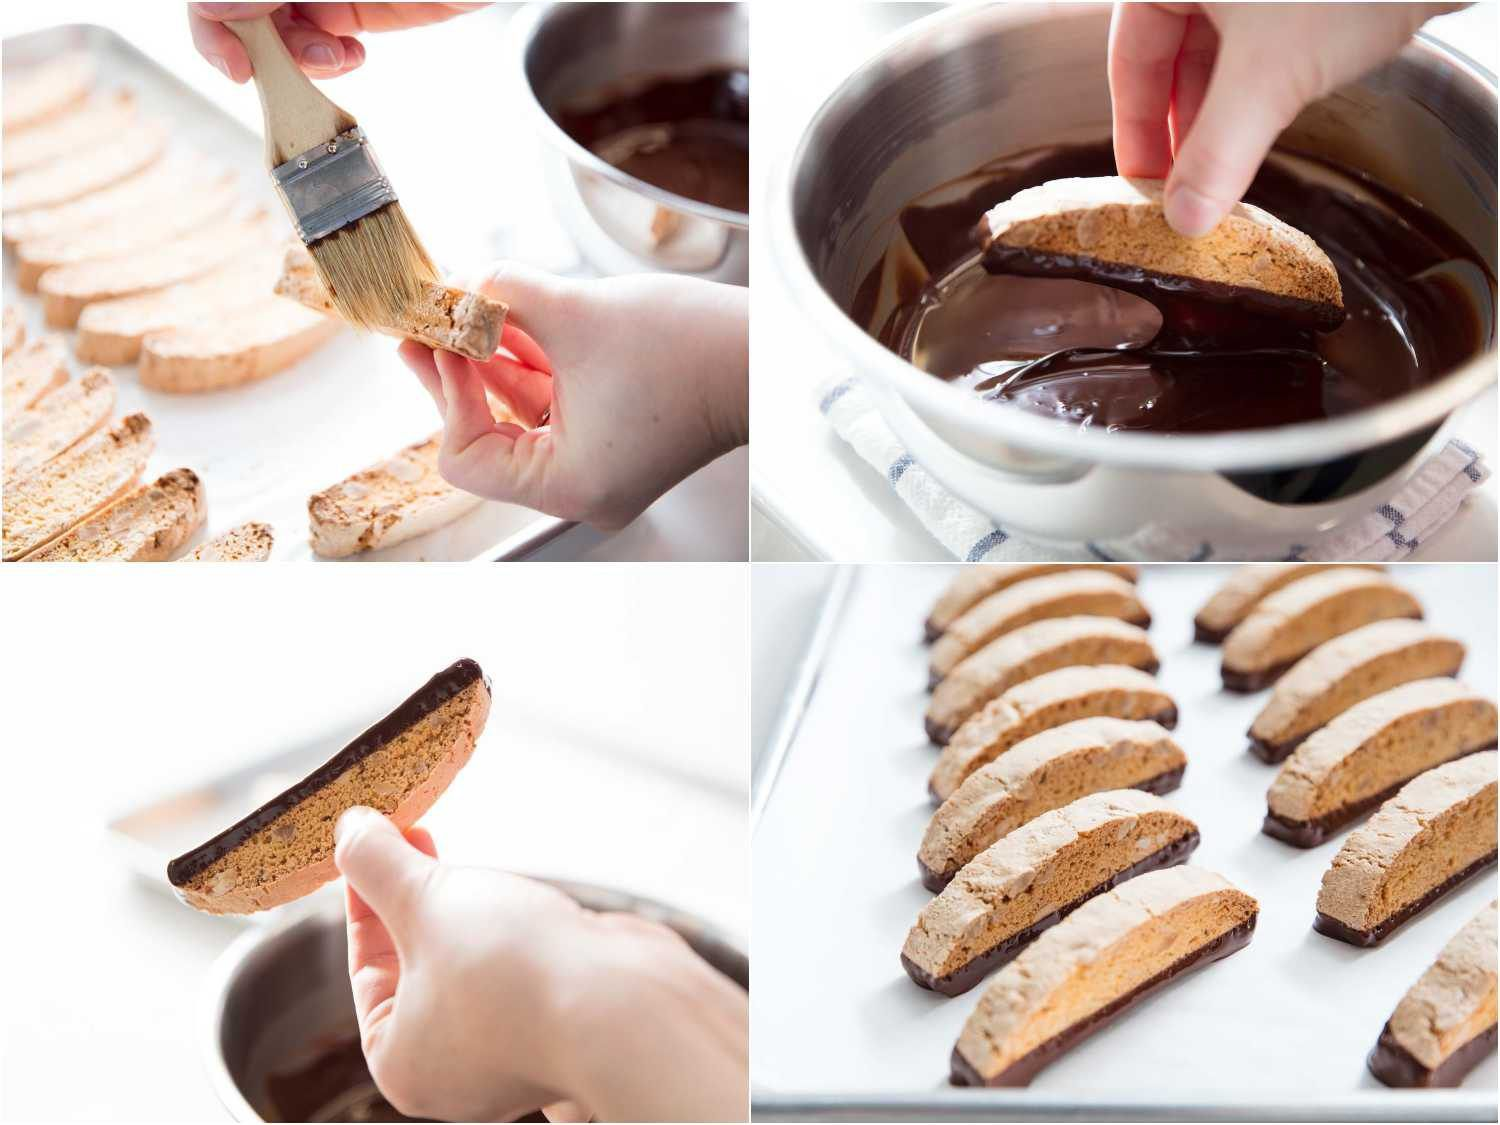 removing crumbs and dipping biscotti in tempered chocolate